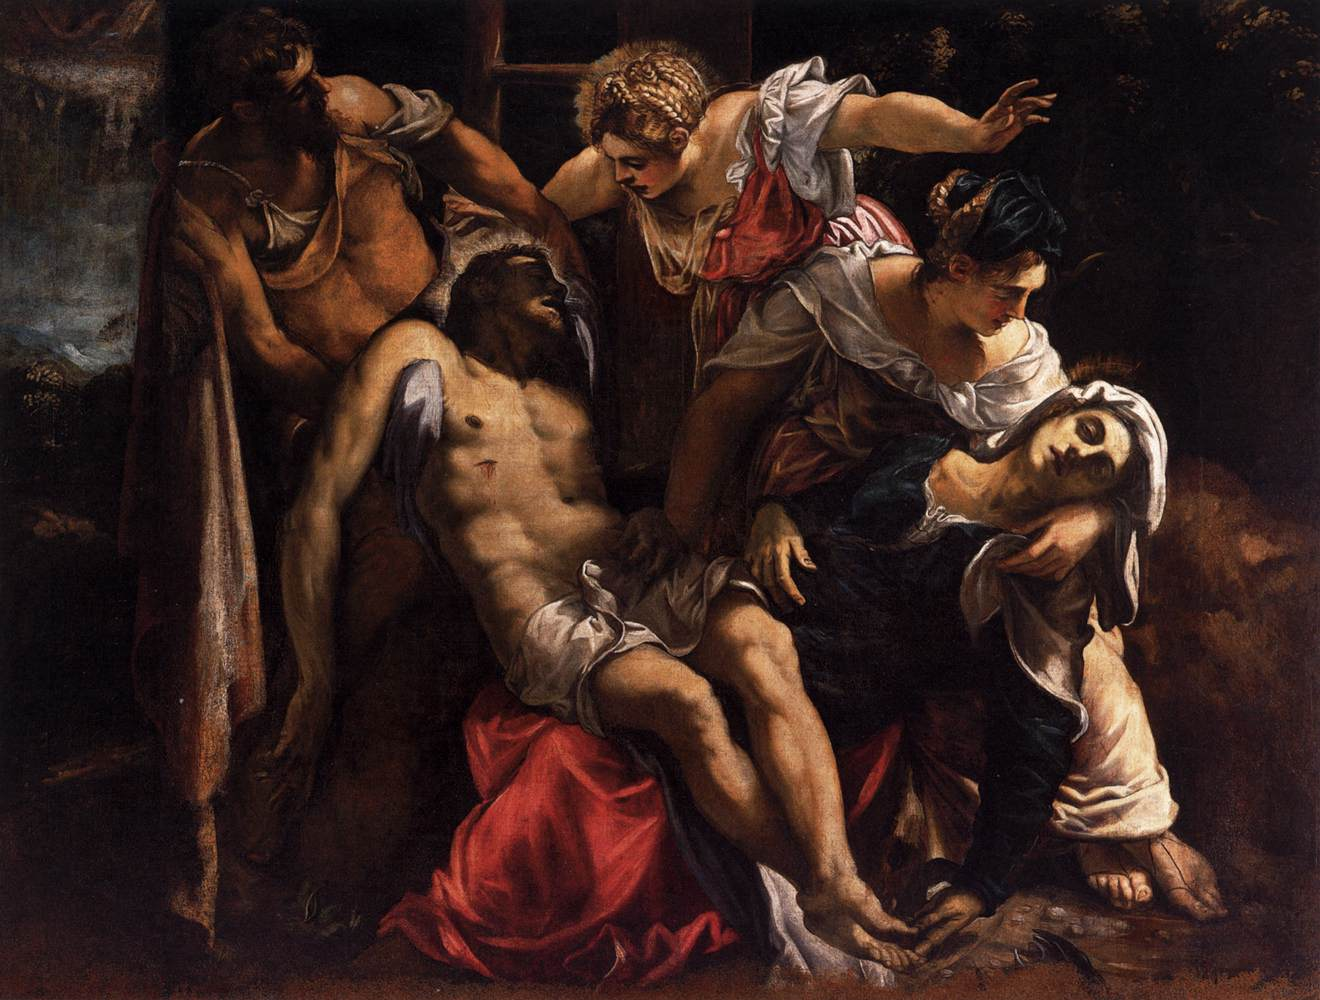 https://uploads4.wikiart.org/images/tintoretto/lamentation-over-the-dead-christ.jpg